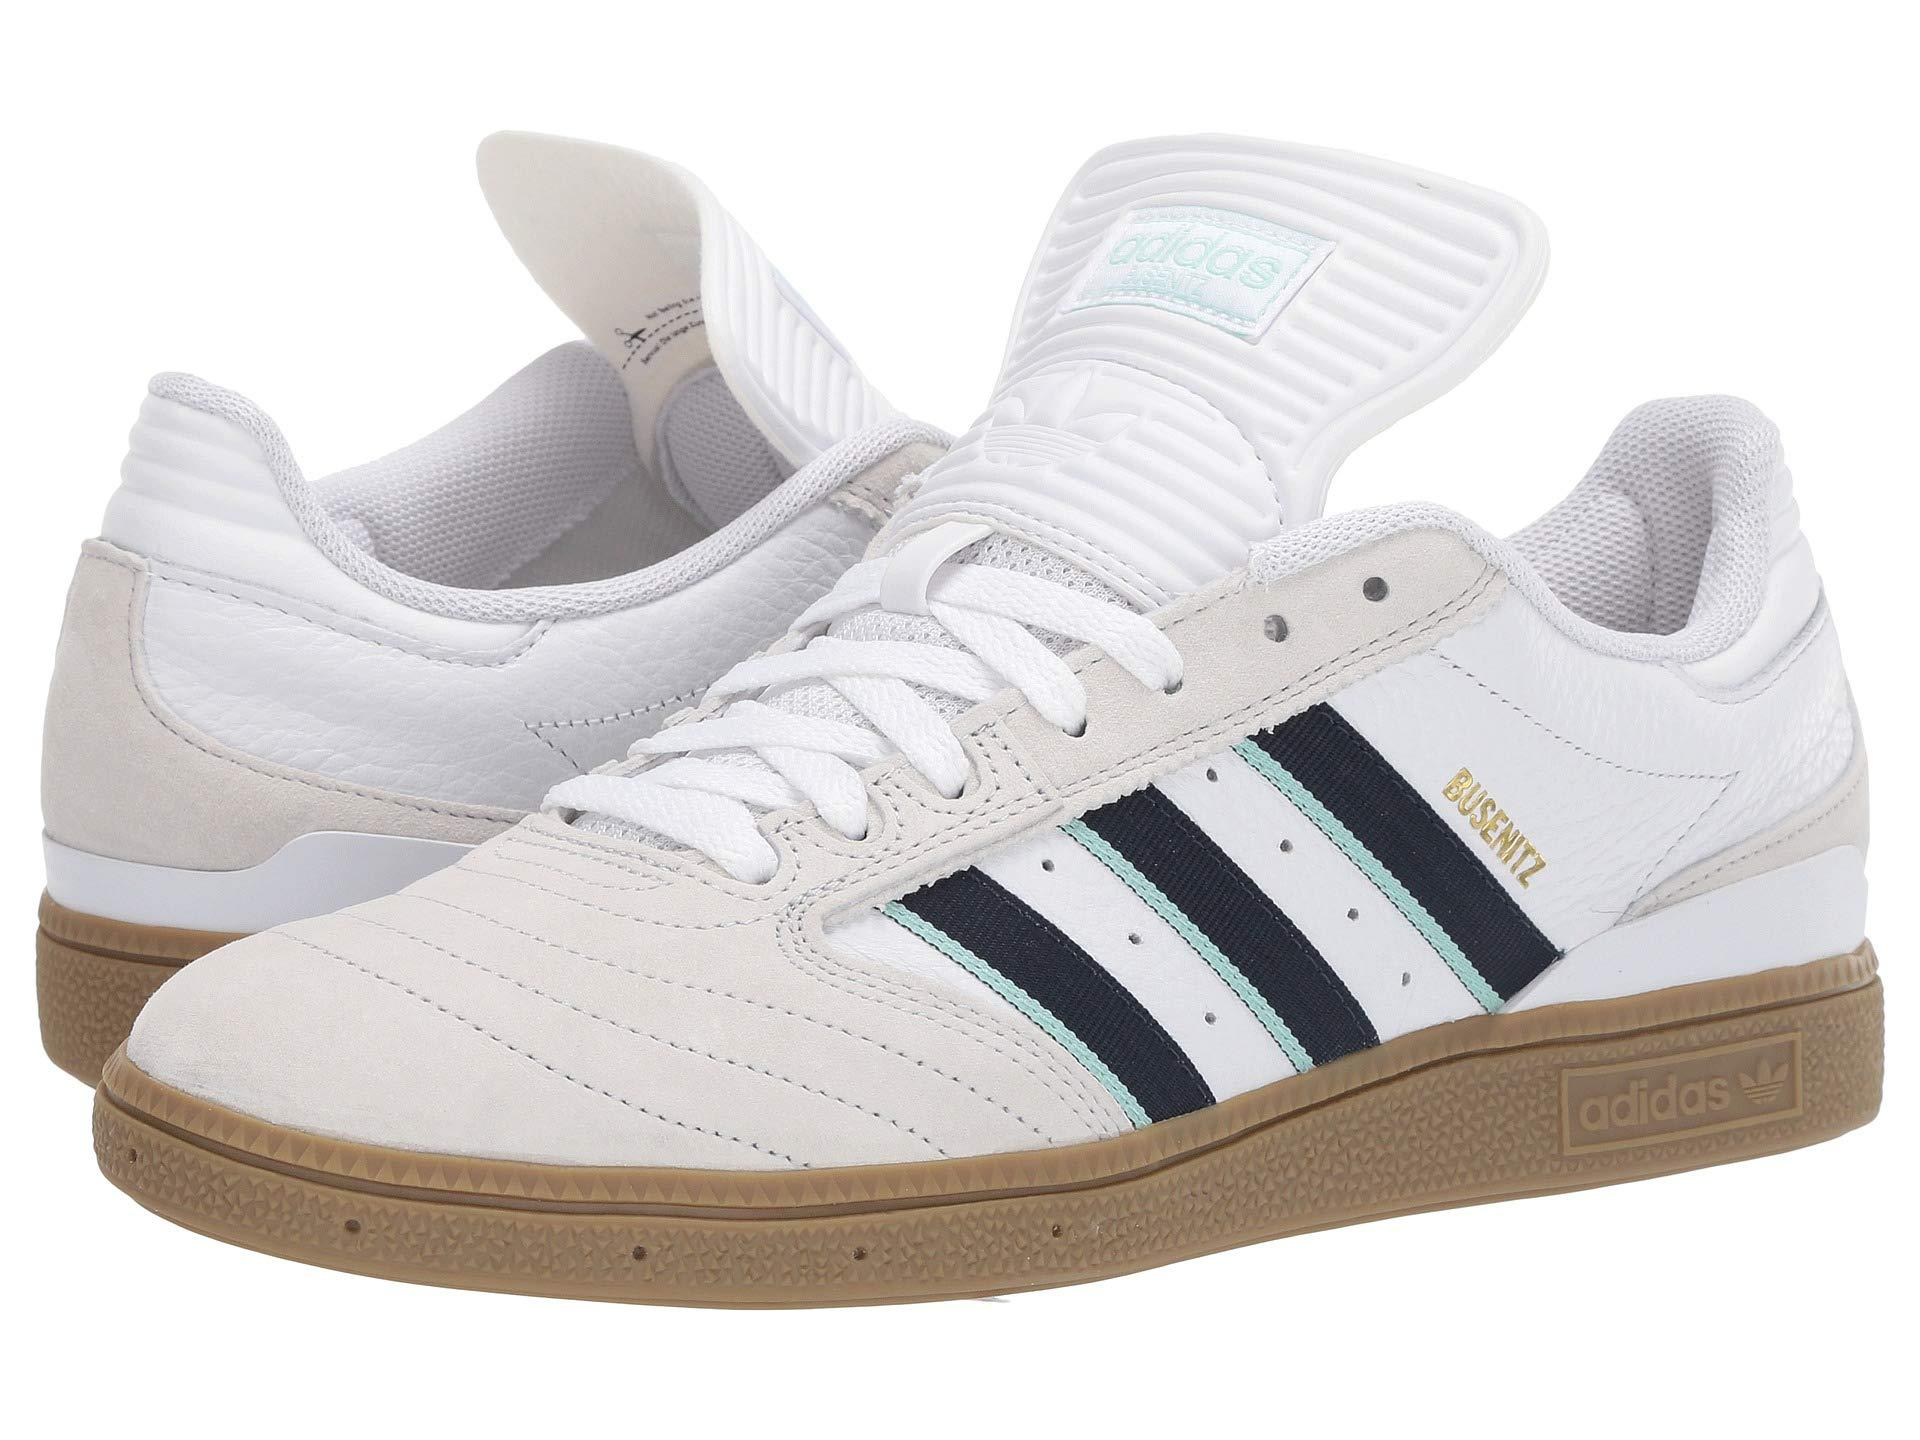 check out 37b4e b786f adidas Originals. Black Busenitz Pro (footwear Whitecollegiate  Burgundyclear Mint) Mens Skate Shoes